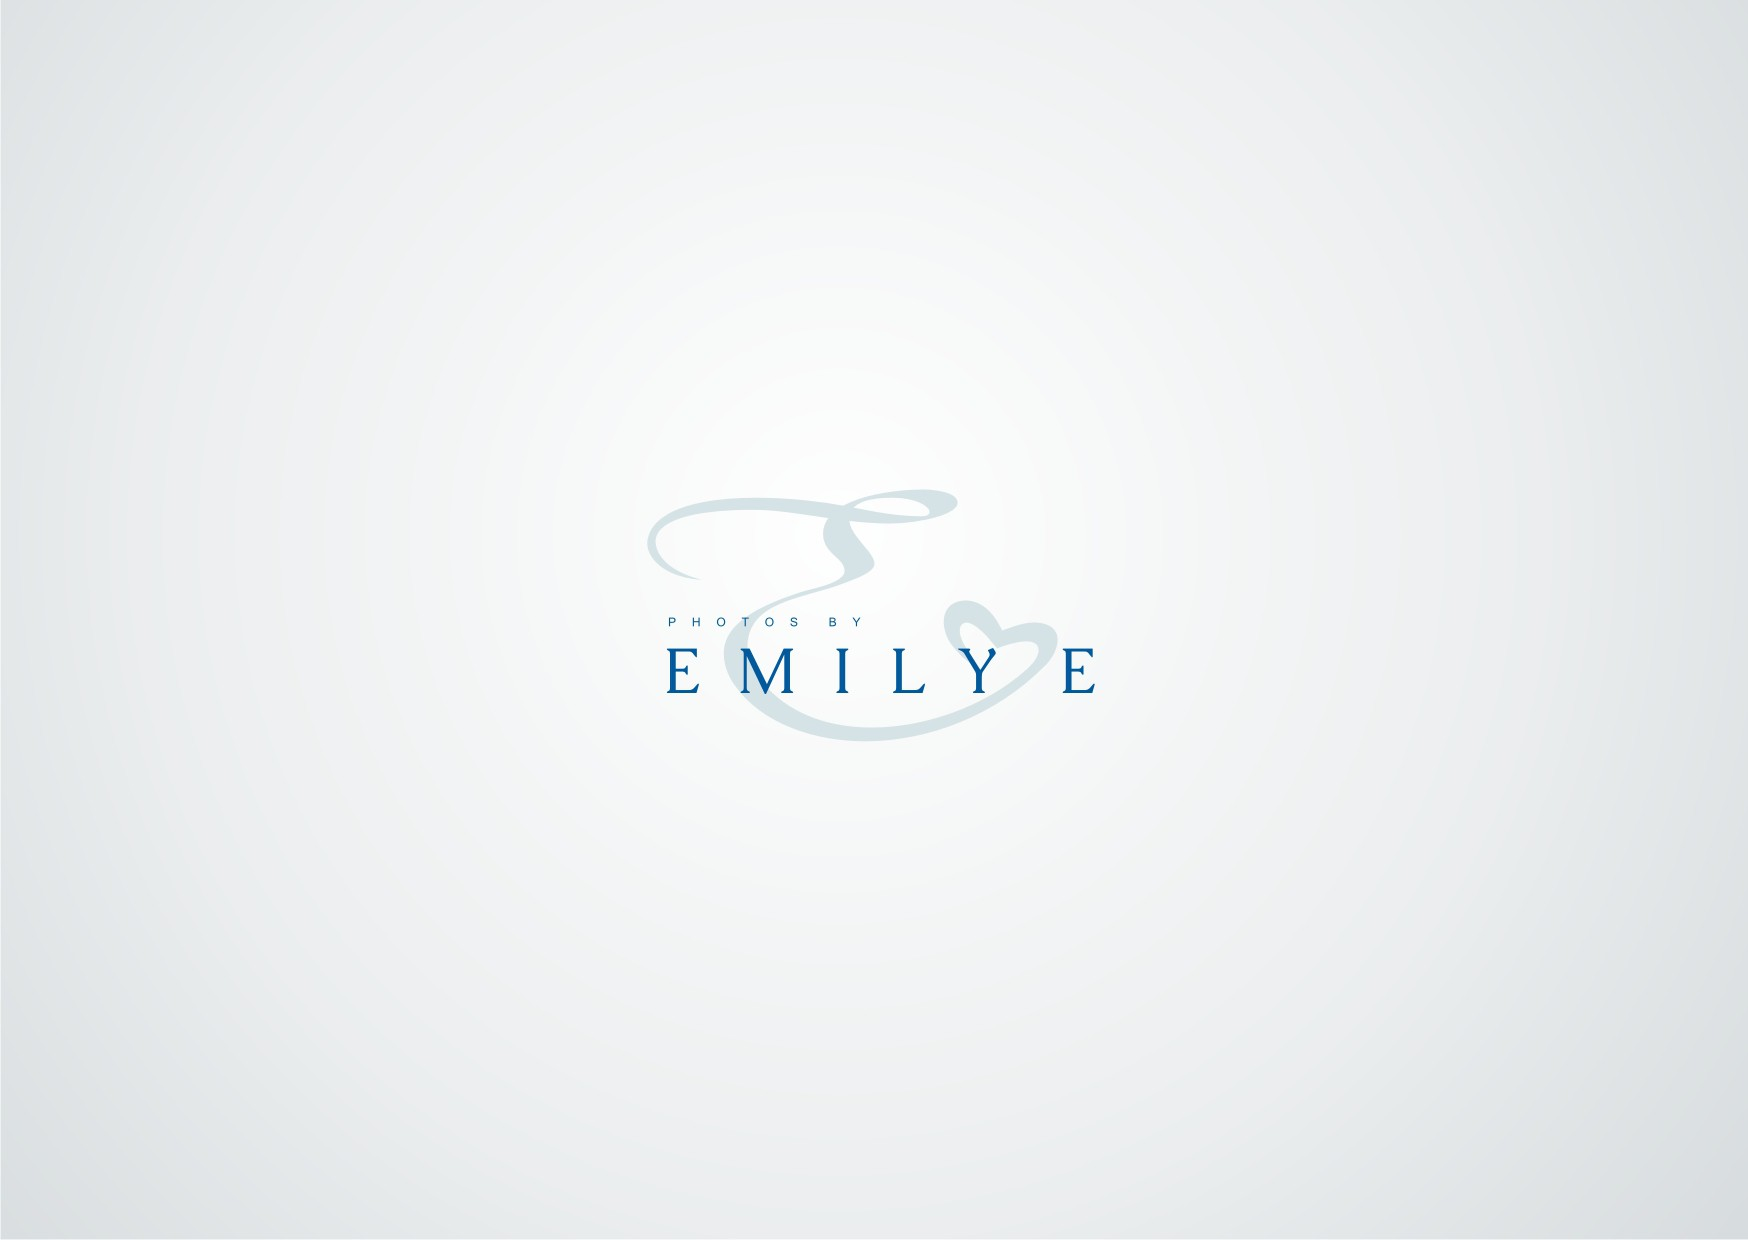 New logo wanted for Photos by Emily E